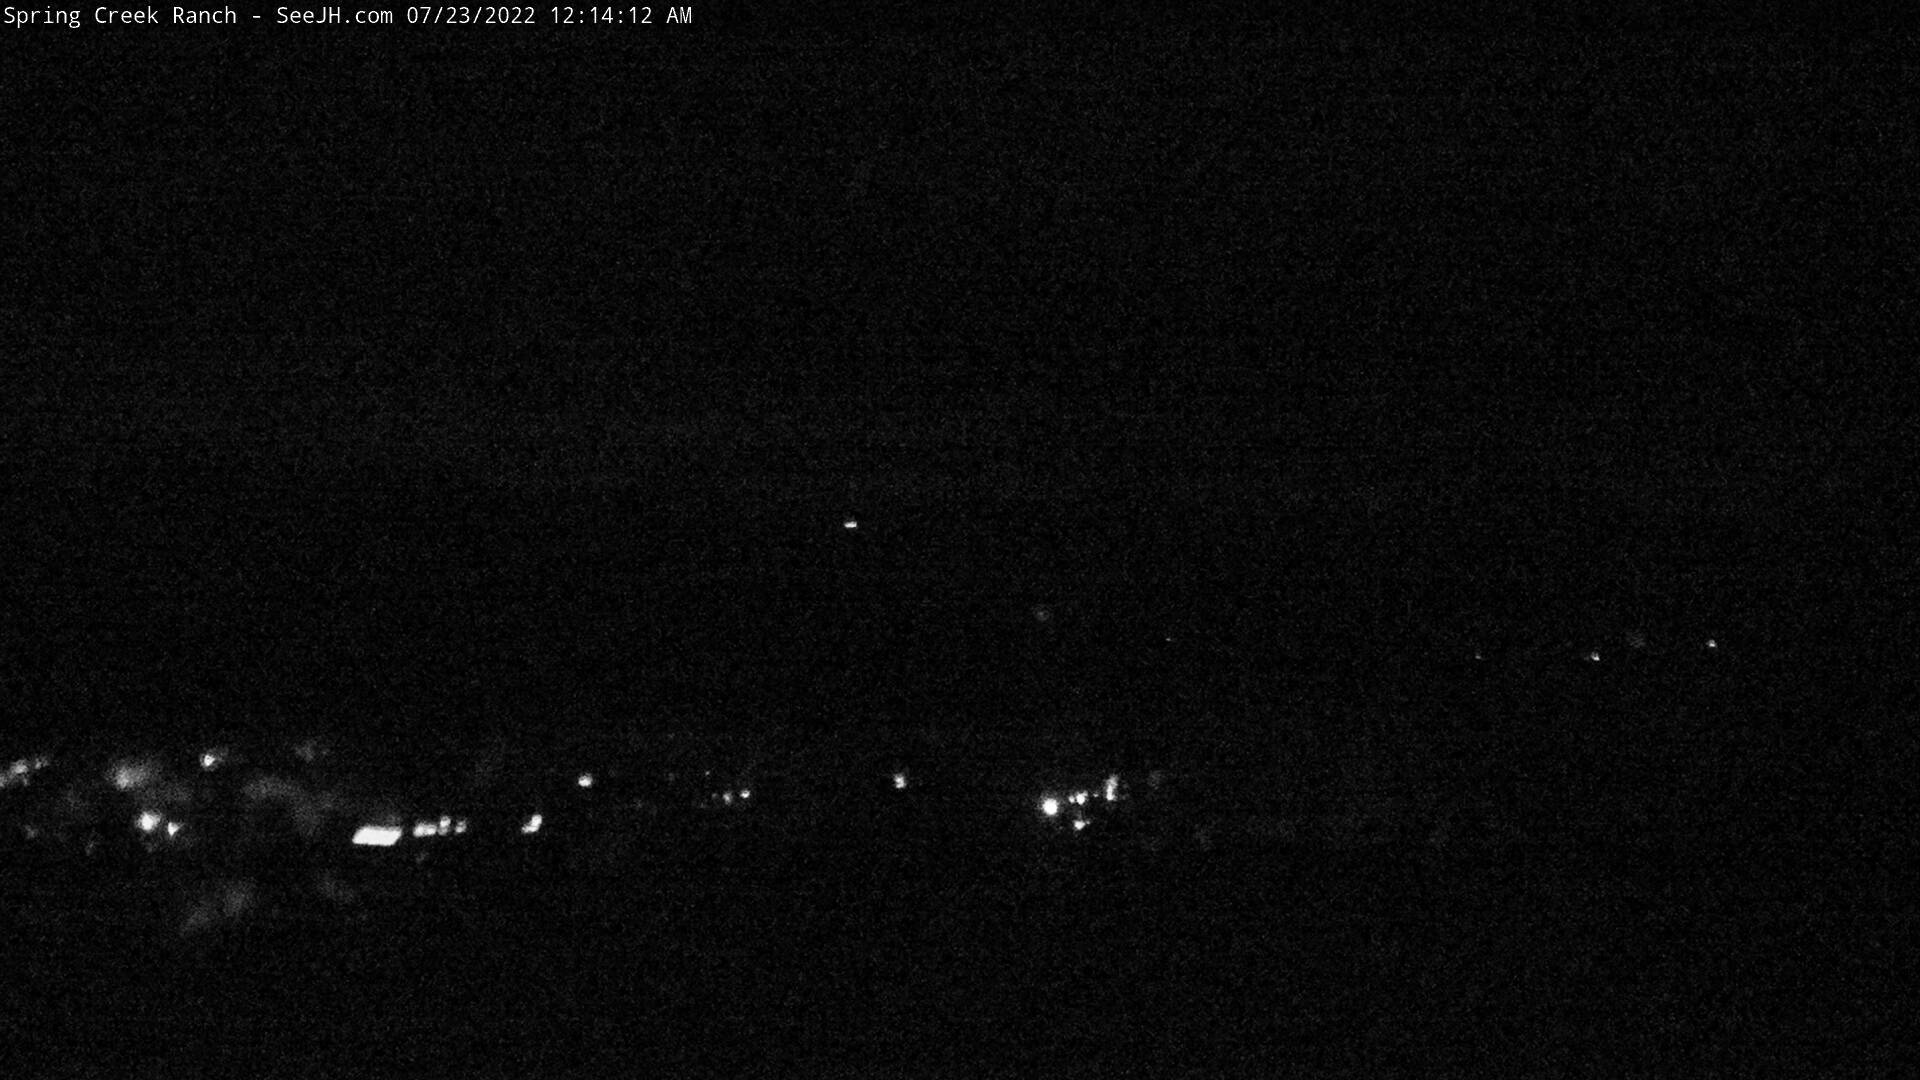 Grand Tetons Spring Creek Ranch Webcam Image